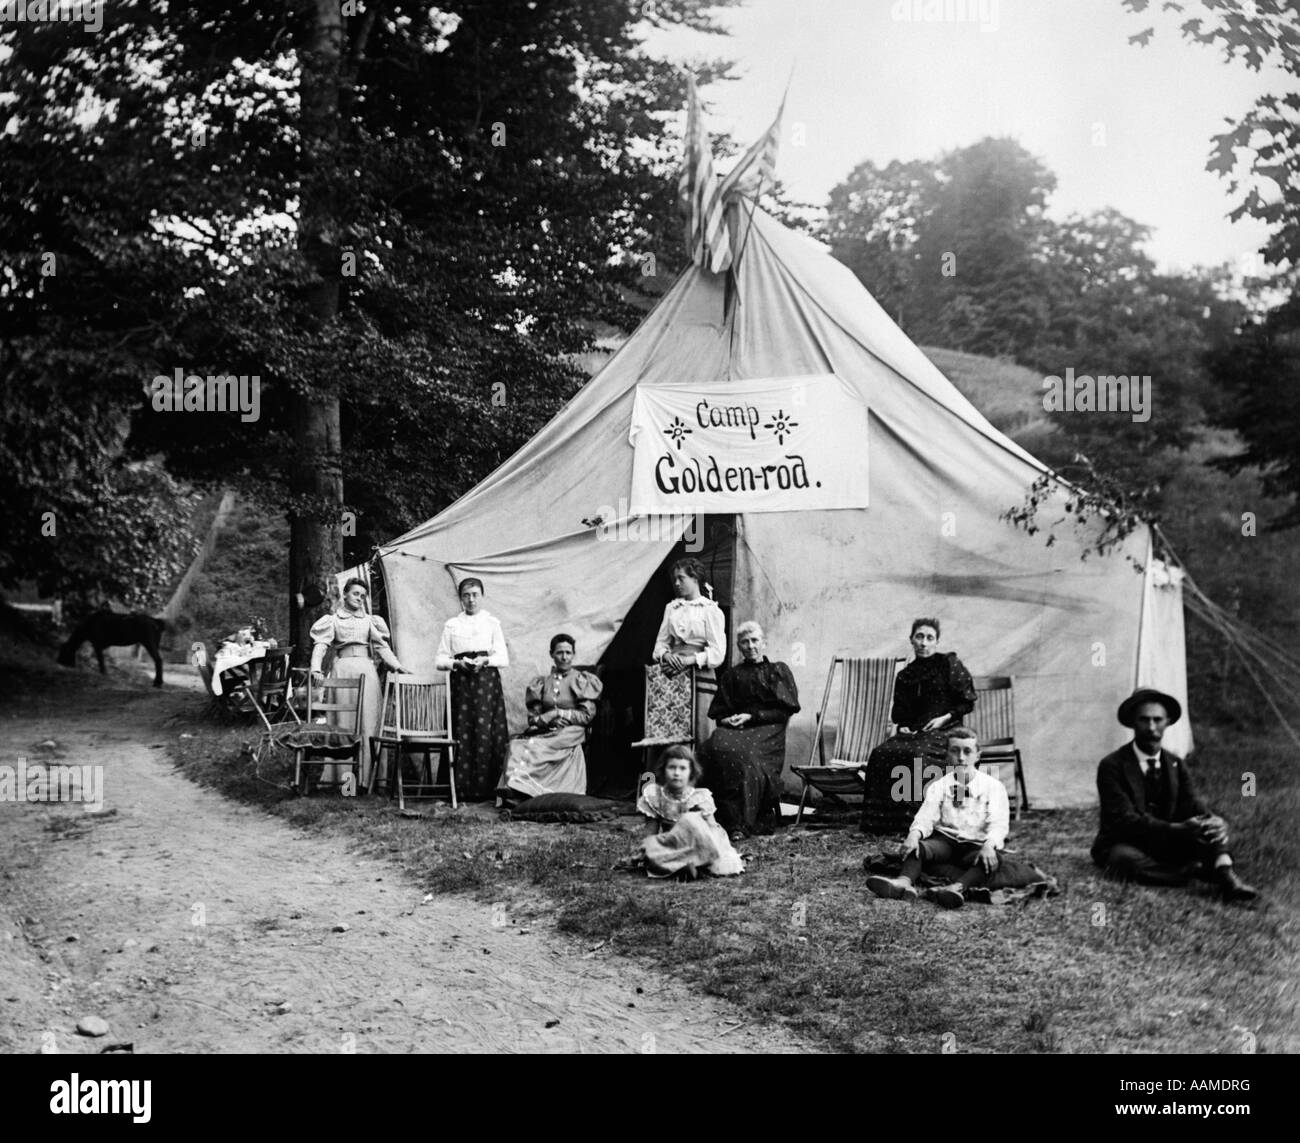 1890s TURN OF THE CENTURY GROUP SEATED IN FRONT OF LARGE TENT WITH SIGN READING CAMP GOLDEN-ROD & 1890s TURN OF THE CENTURY GROUP SEATED IN FRONT OF LARGE TENT WITH ...